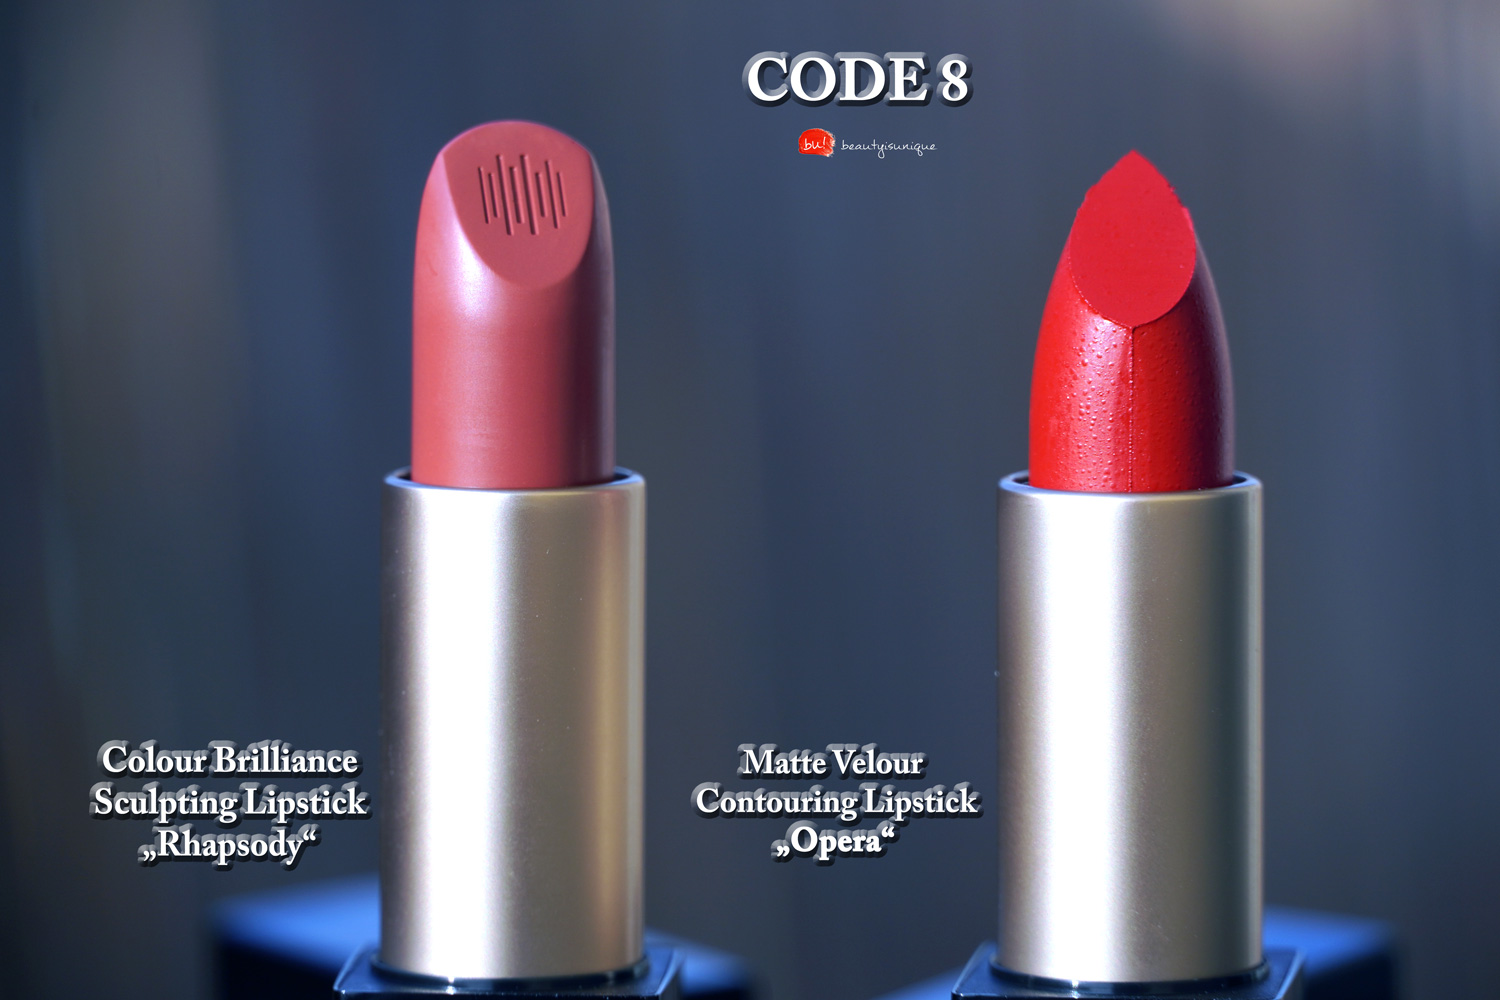 code-8-matte-velour-contouring-lipstick-opera-swatches